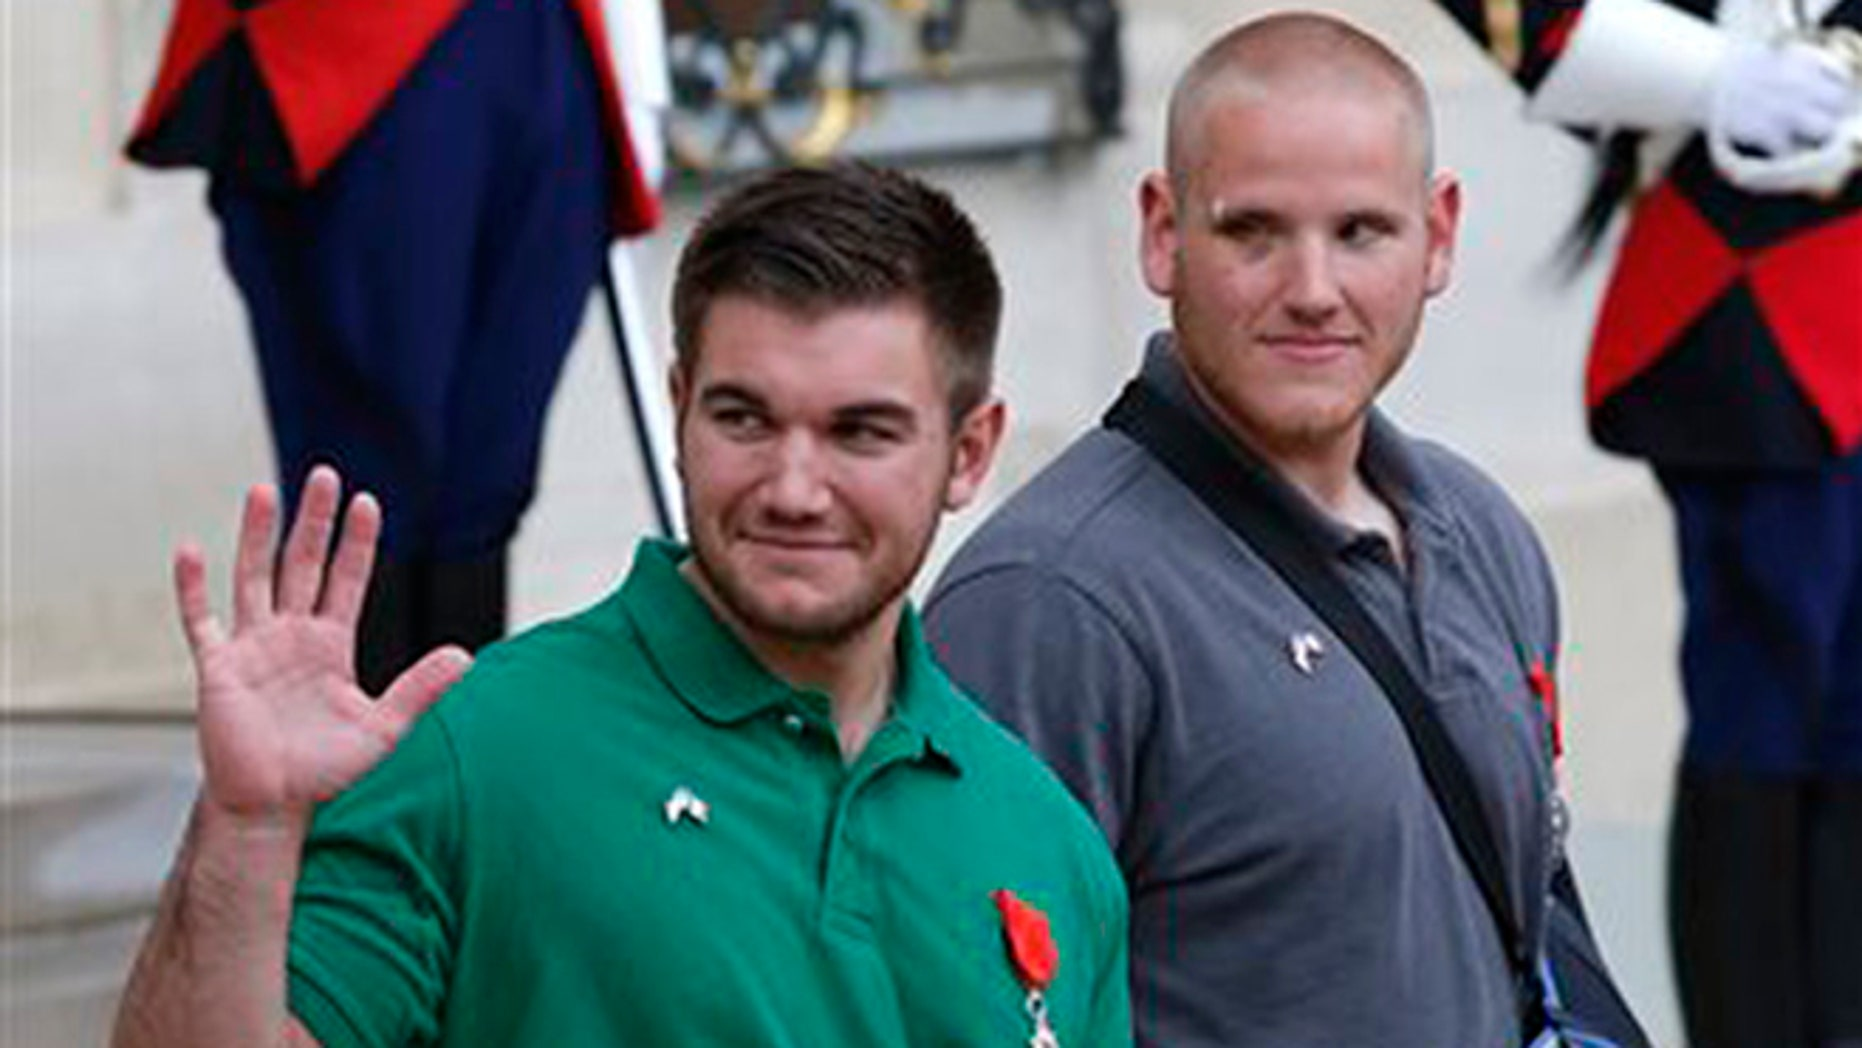 U.S. National Guardsman from Roseburg, Oregon, Alek Skarlatos , left, waves to the media as he leaves the Elysee Place in Paris, France, with U.S. Airman Spencer Stone, after being awarded with the French Legion of Honor by French President, Francois Hollande, Monday, Aug. 24, 2015. (AP Photo/Michel Euler)